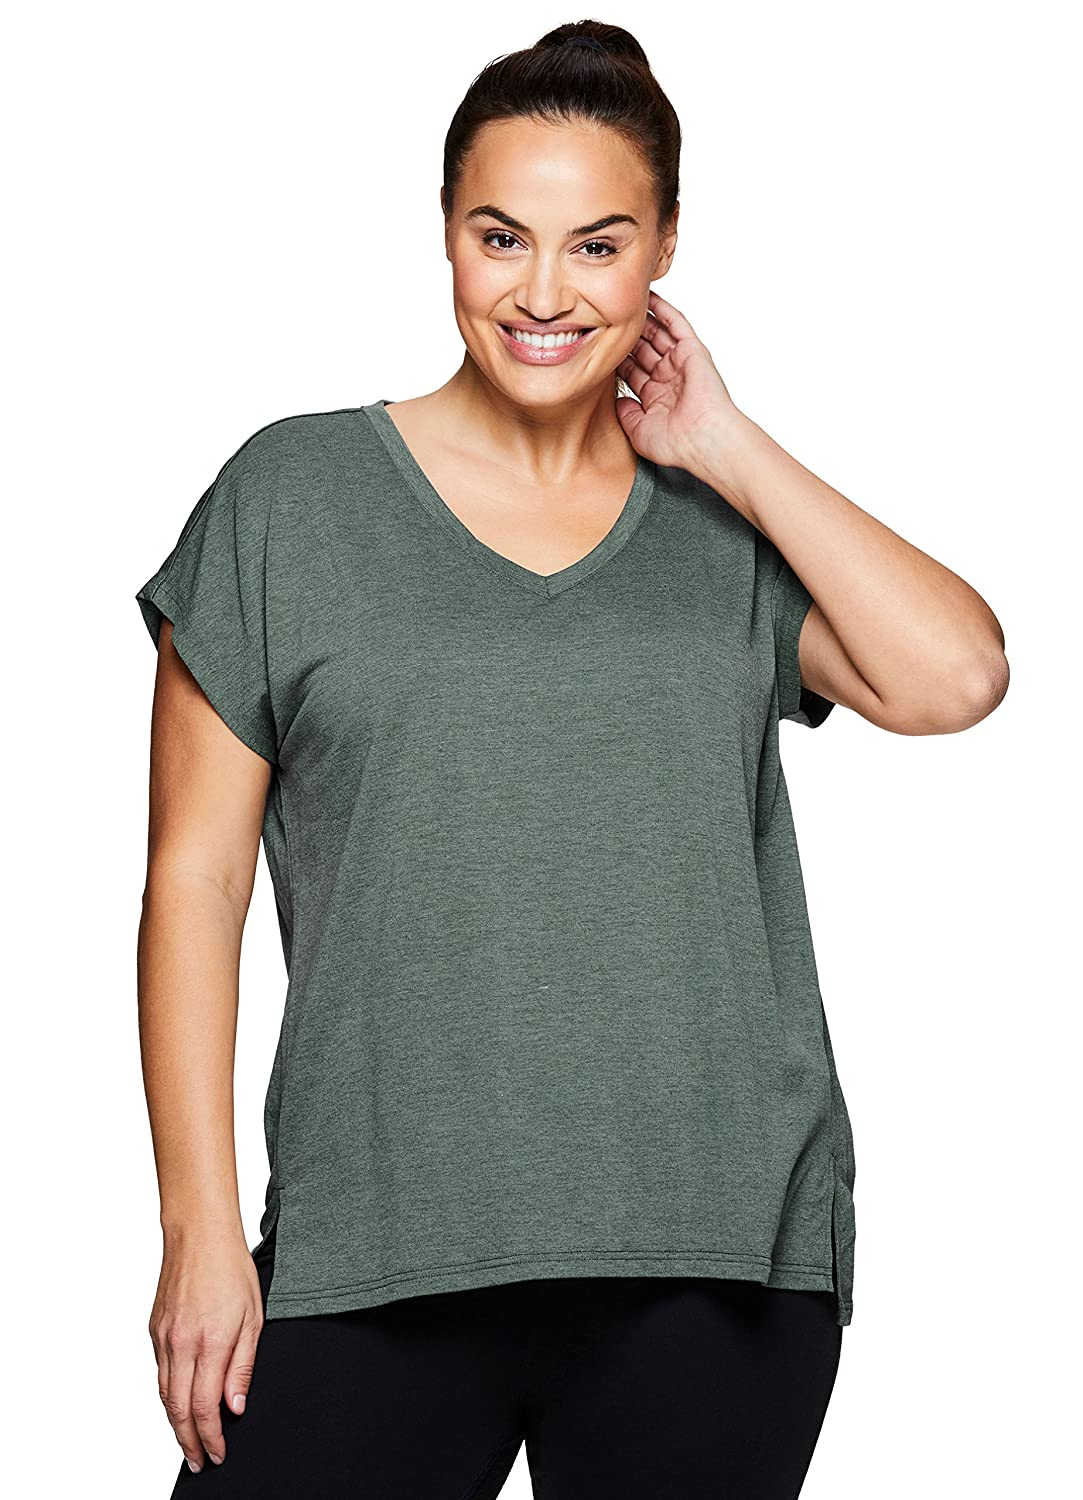 643aa73f53 Simplistic and soft this plus women\'s RBX Active short sleeve top will  become your new favorite essential top. Super soft fabric feels good  against your ...